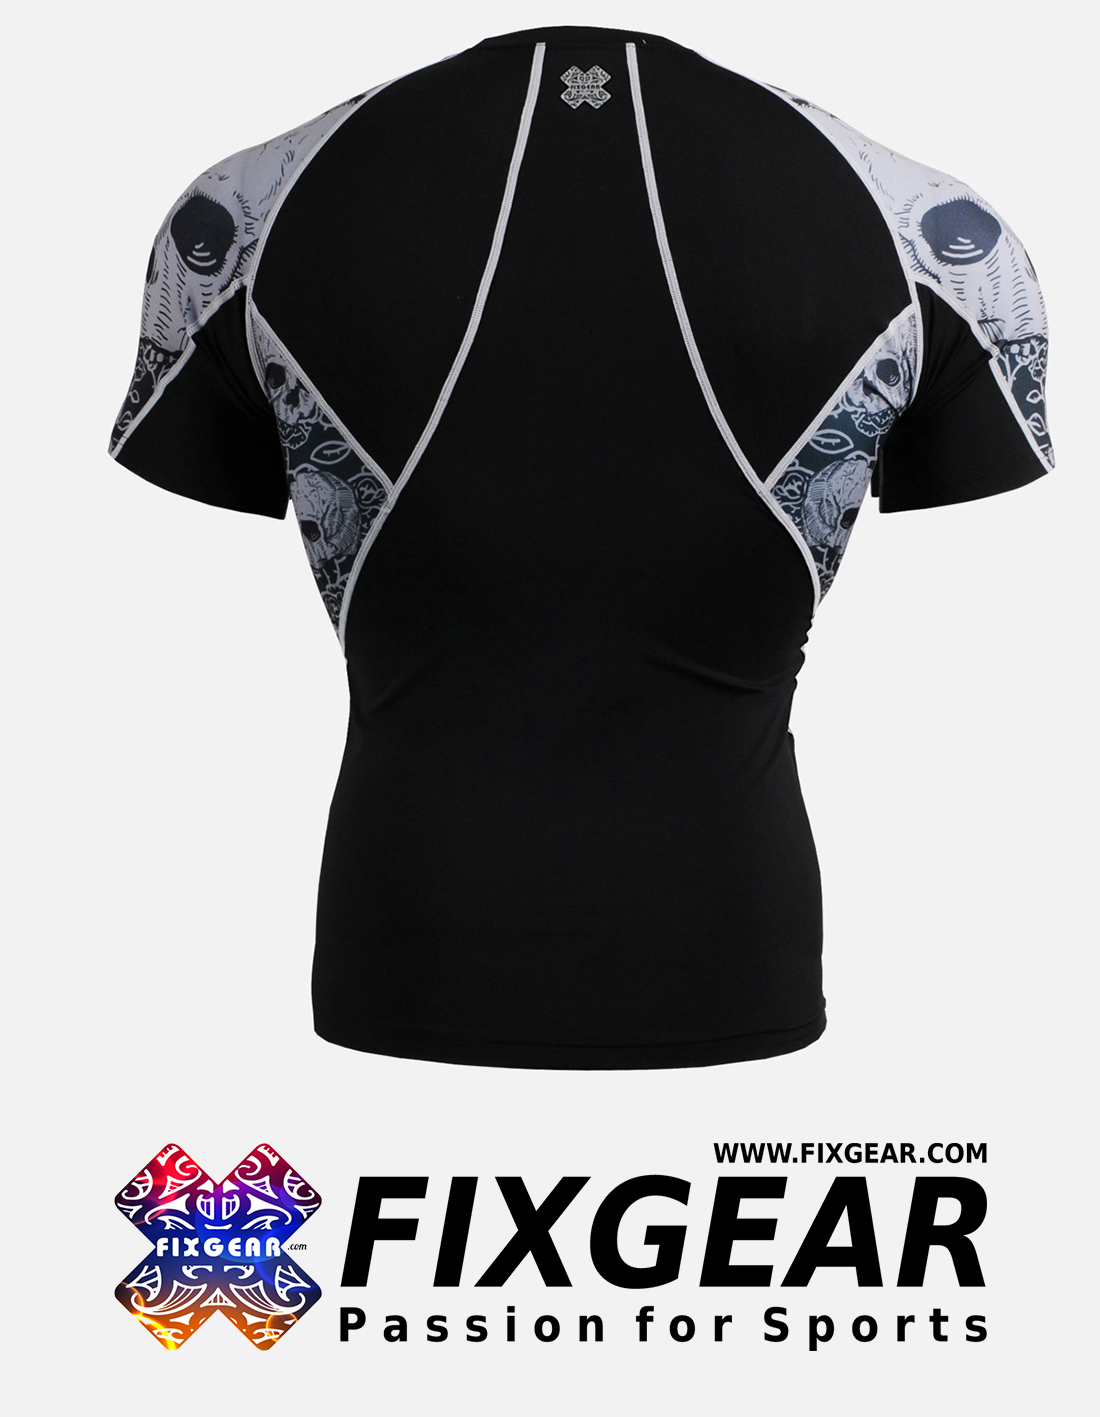 FIXGEAR C2S-B40 Compression Base Layer Shirt Short Sleeve